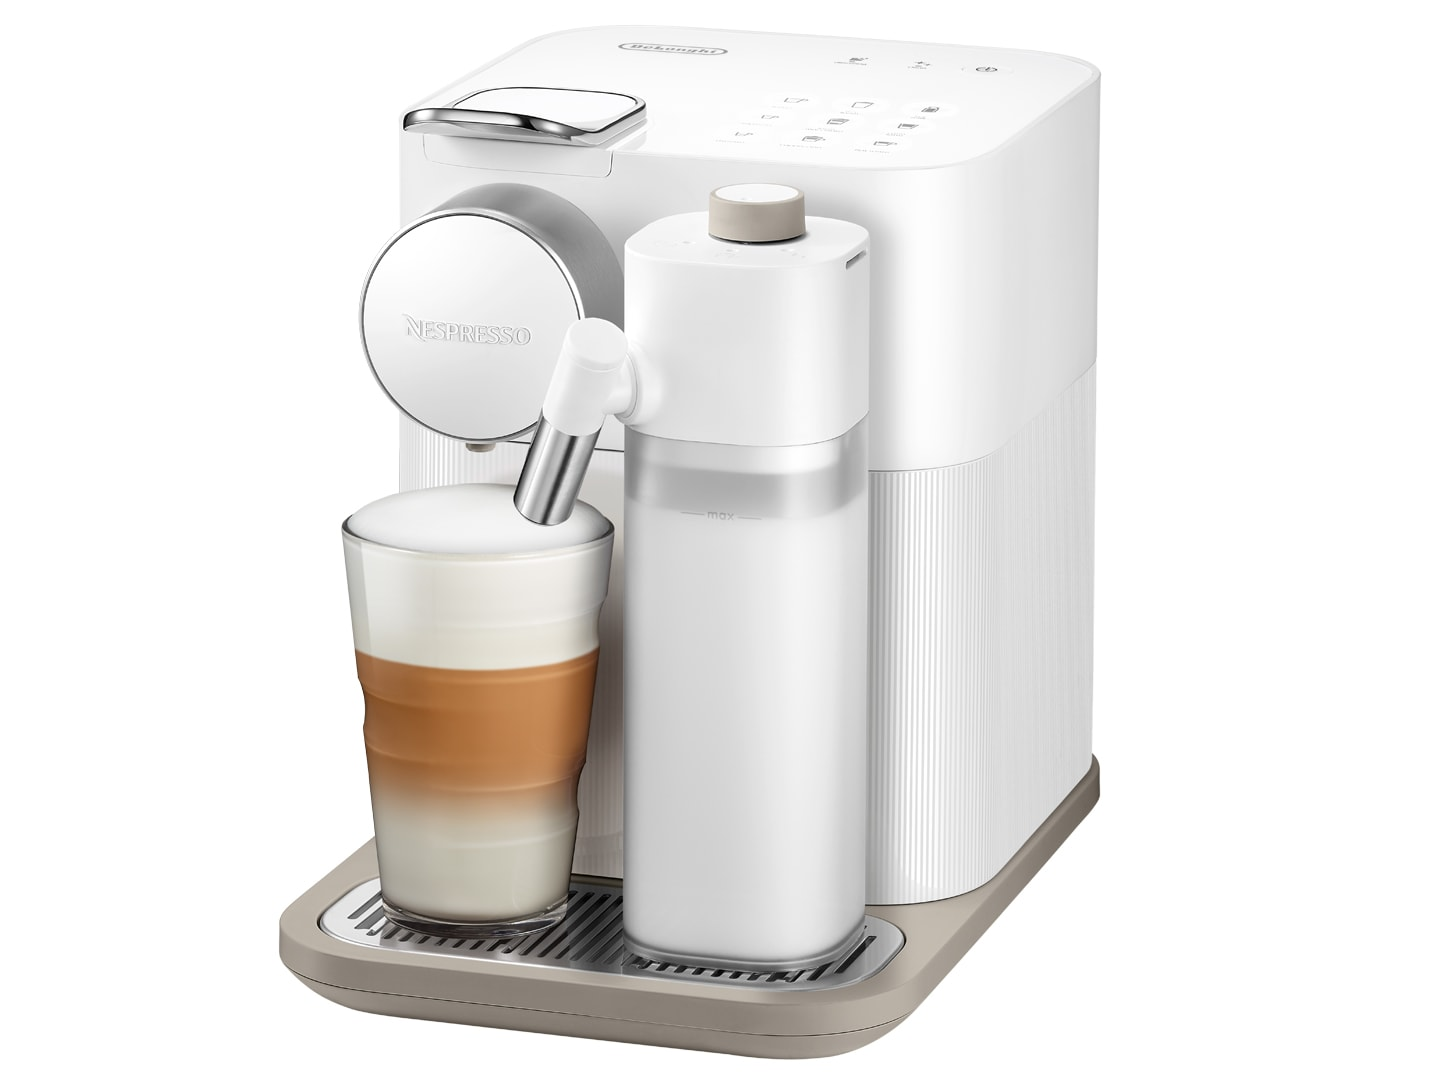 DeLonghi Nespresso Capsule Coffee Machine Gran Lattissima EN650.W